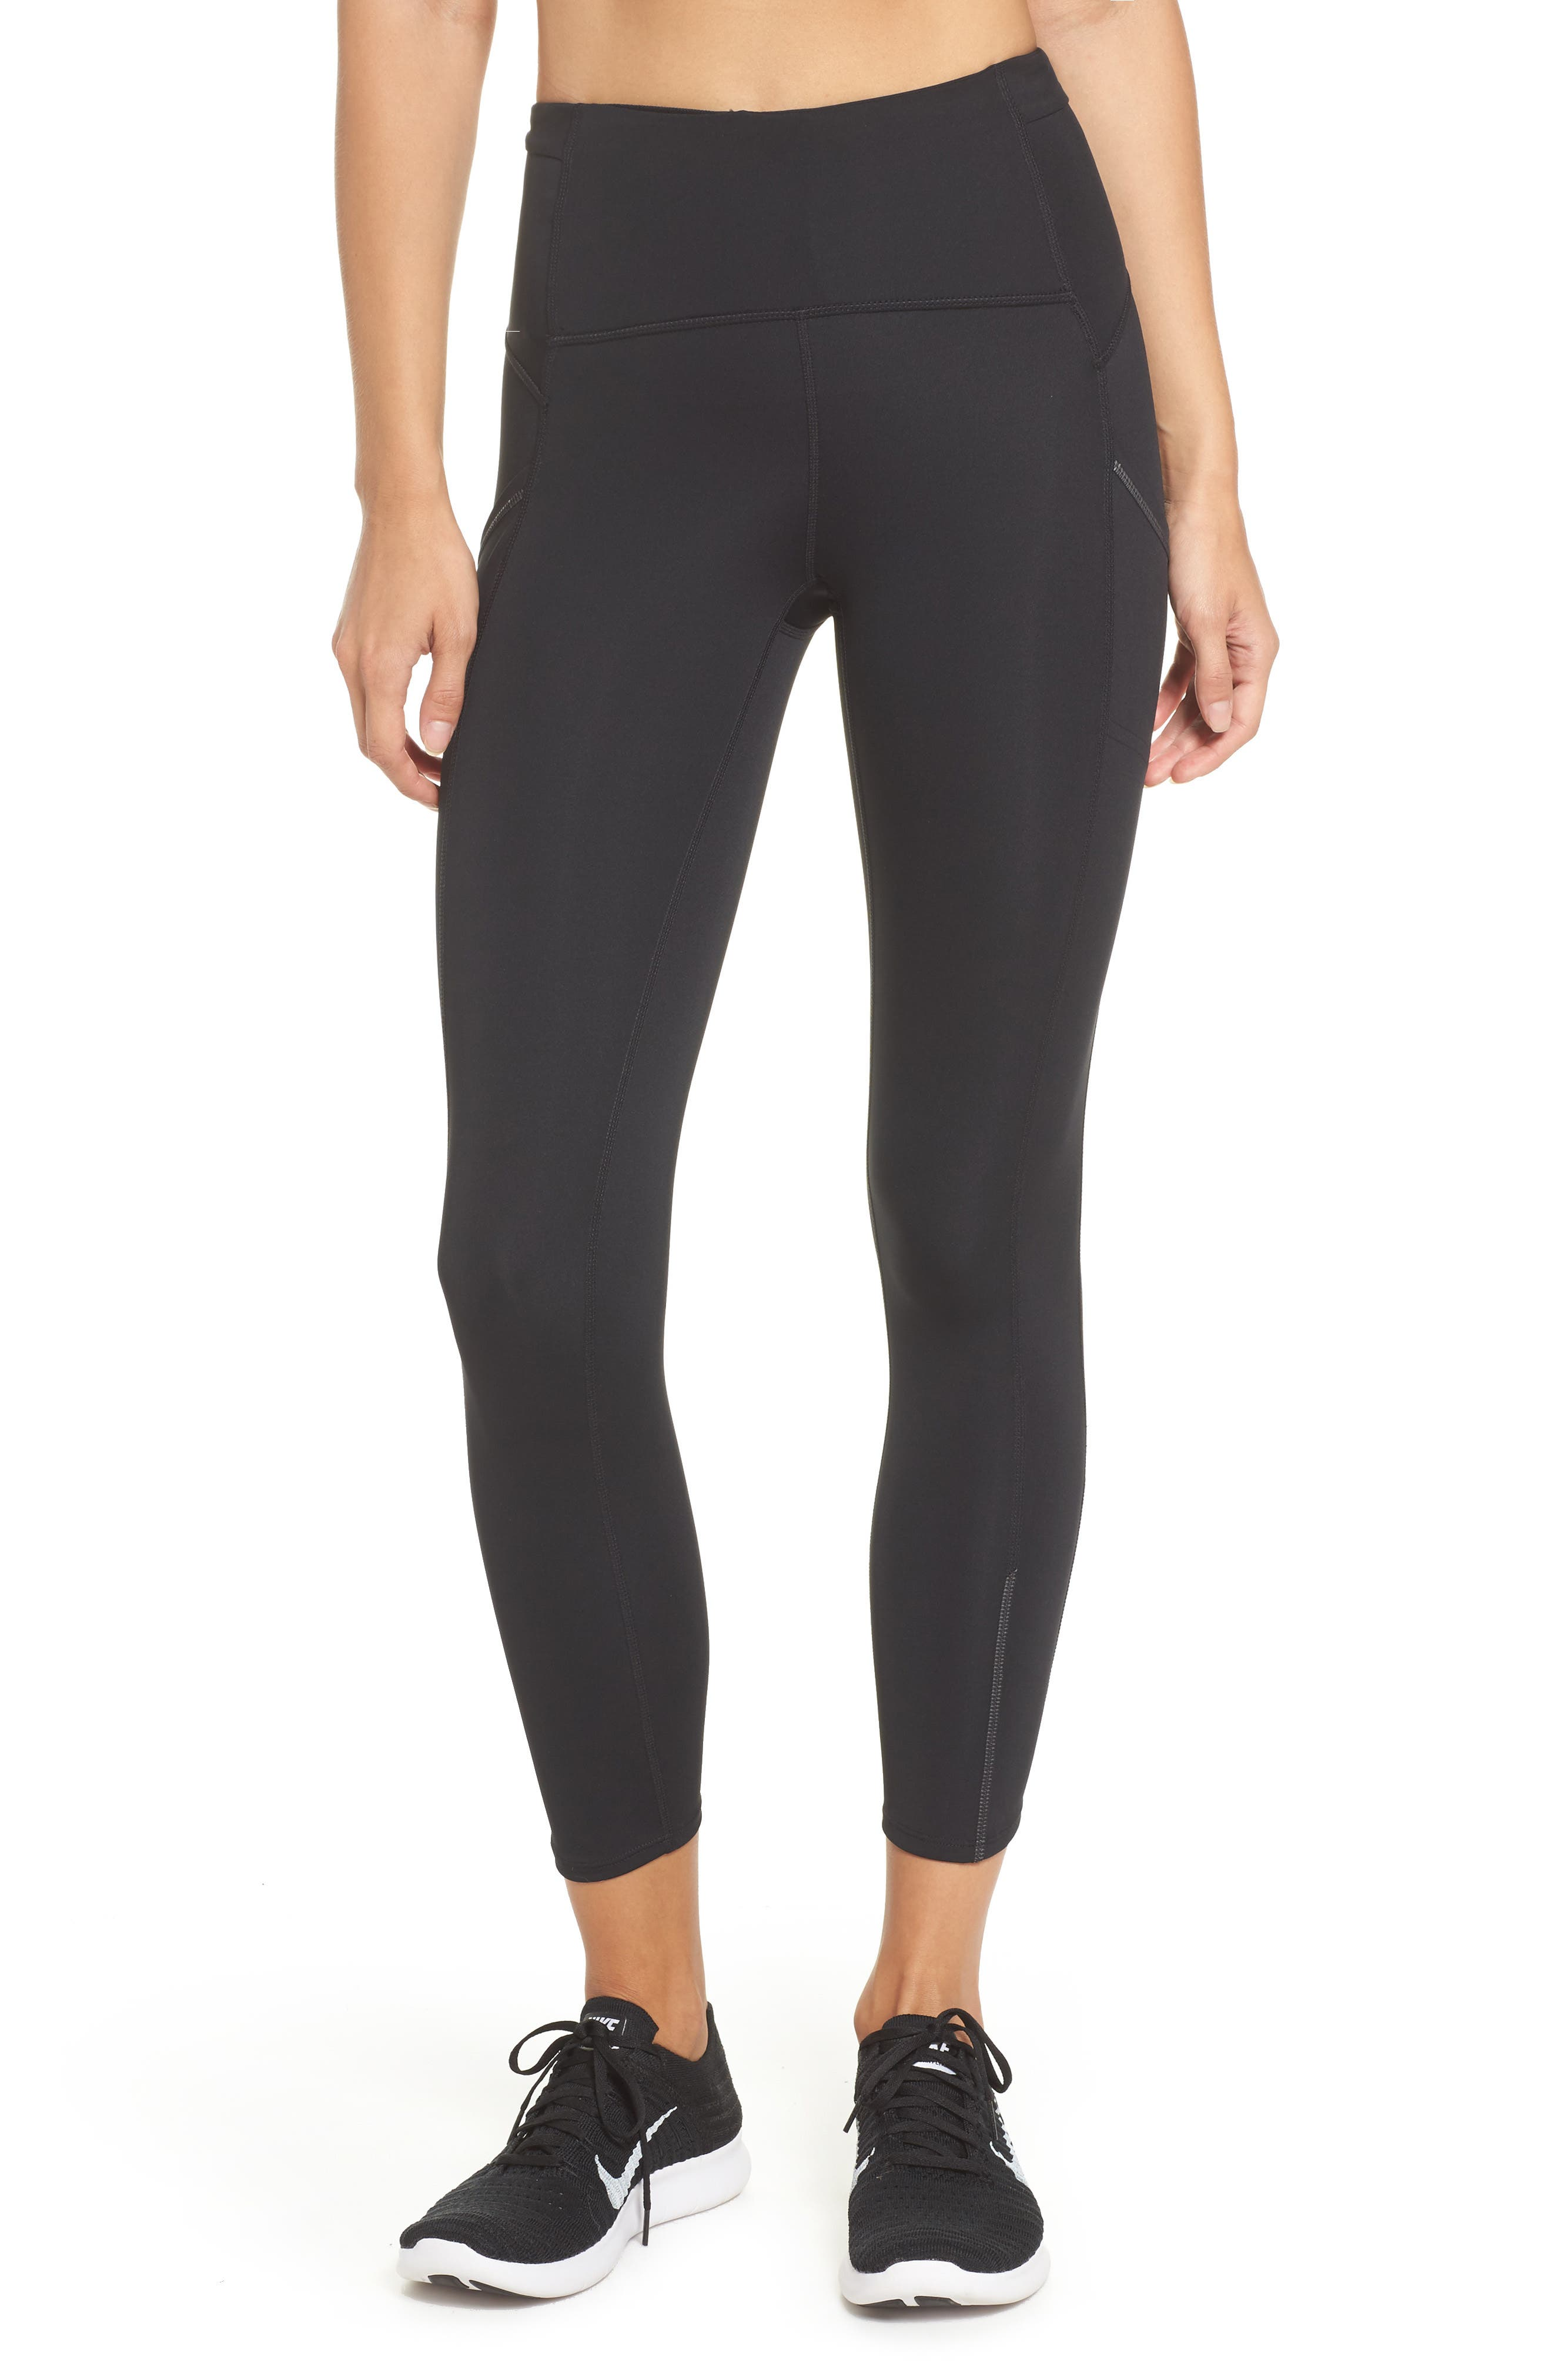 Sprint In High Waist Midi Leggings,                             Main thumbnail 1, color,                             001